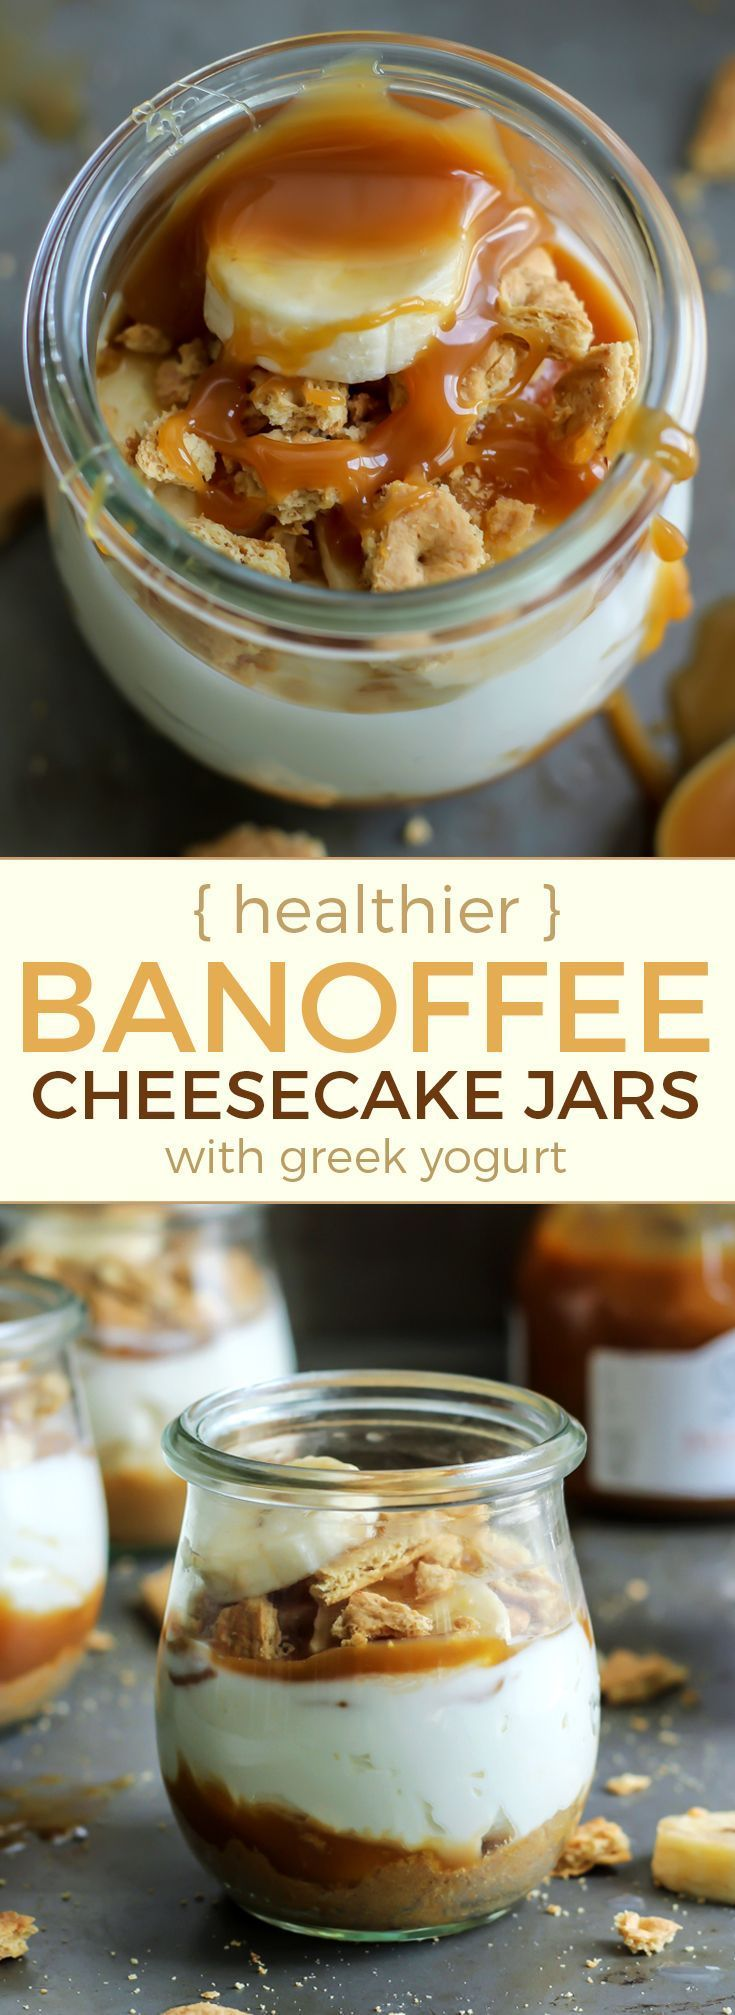 No-Bake Banoffee Cheesecake Jars. These are perfect little single-serve desserts. You can use your favorite GF cookie or graham cracker for the base!